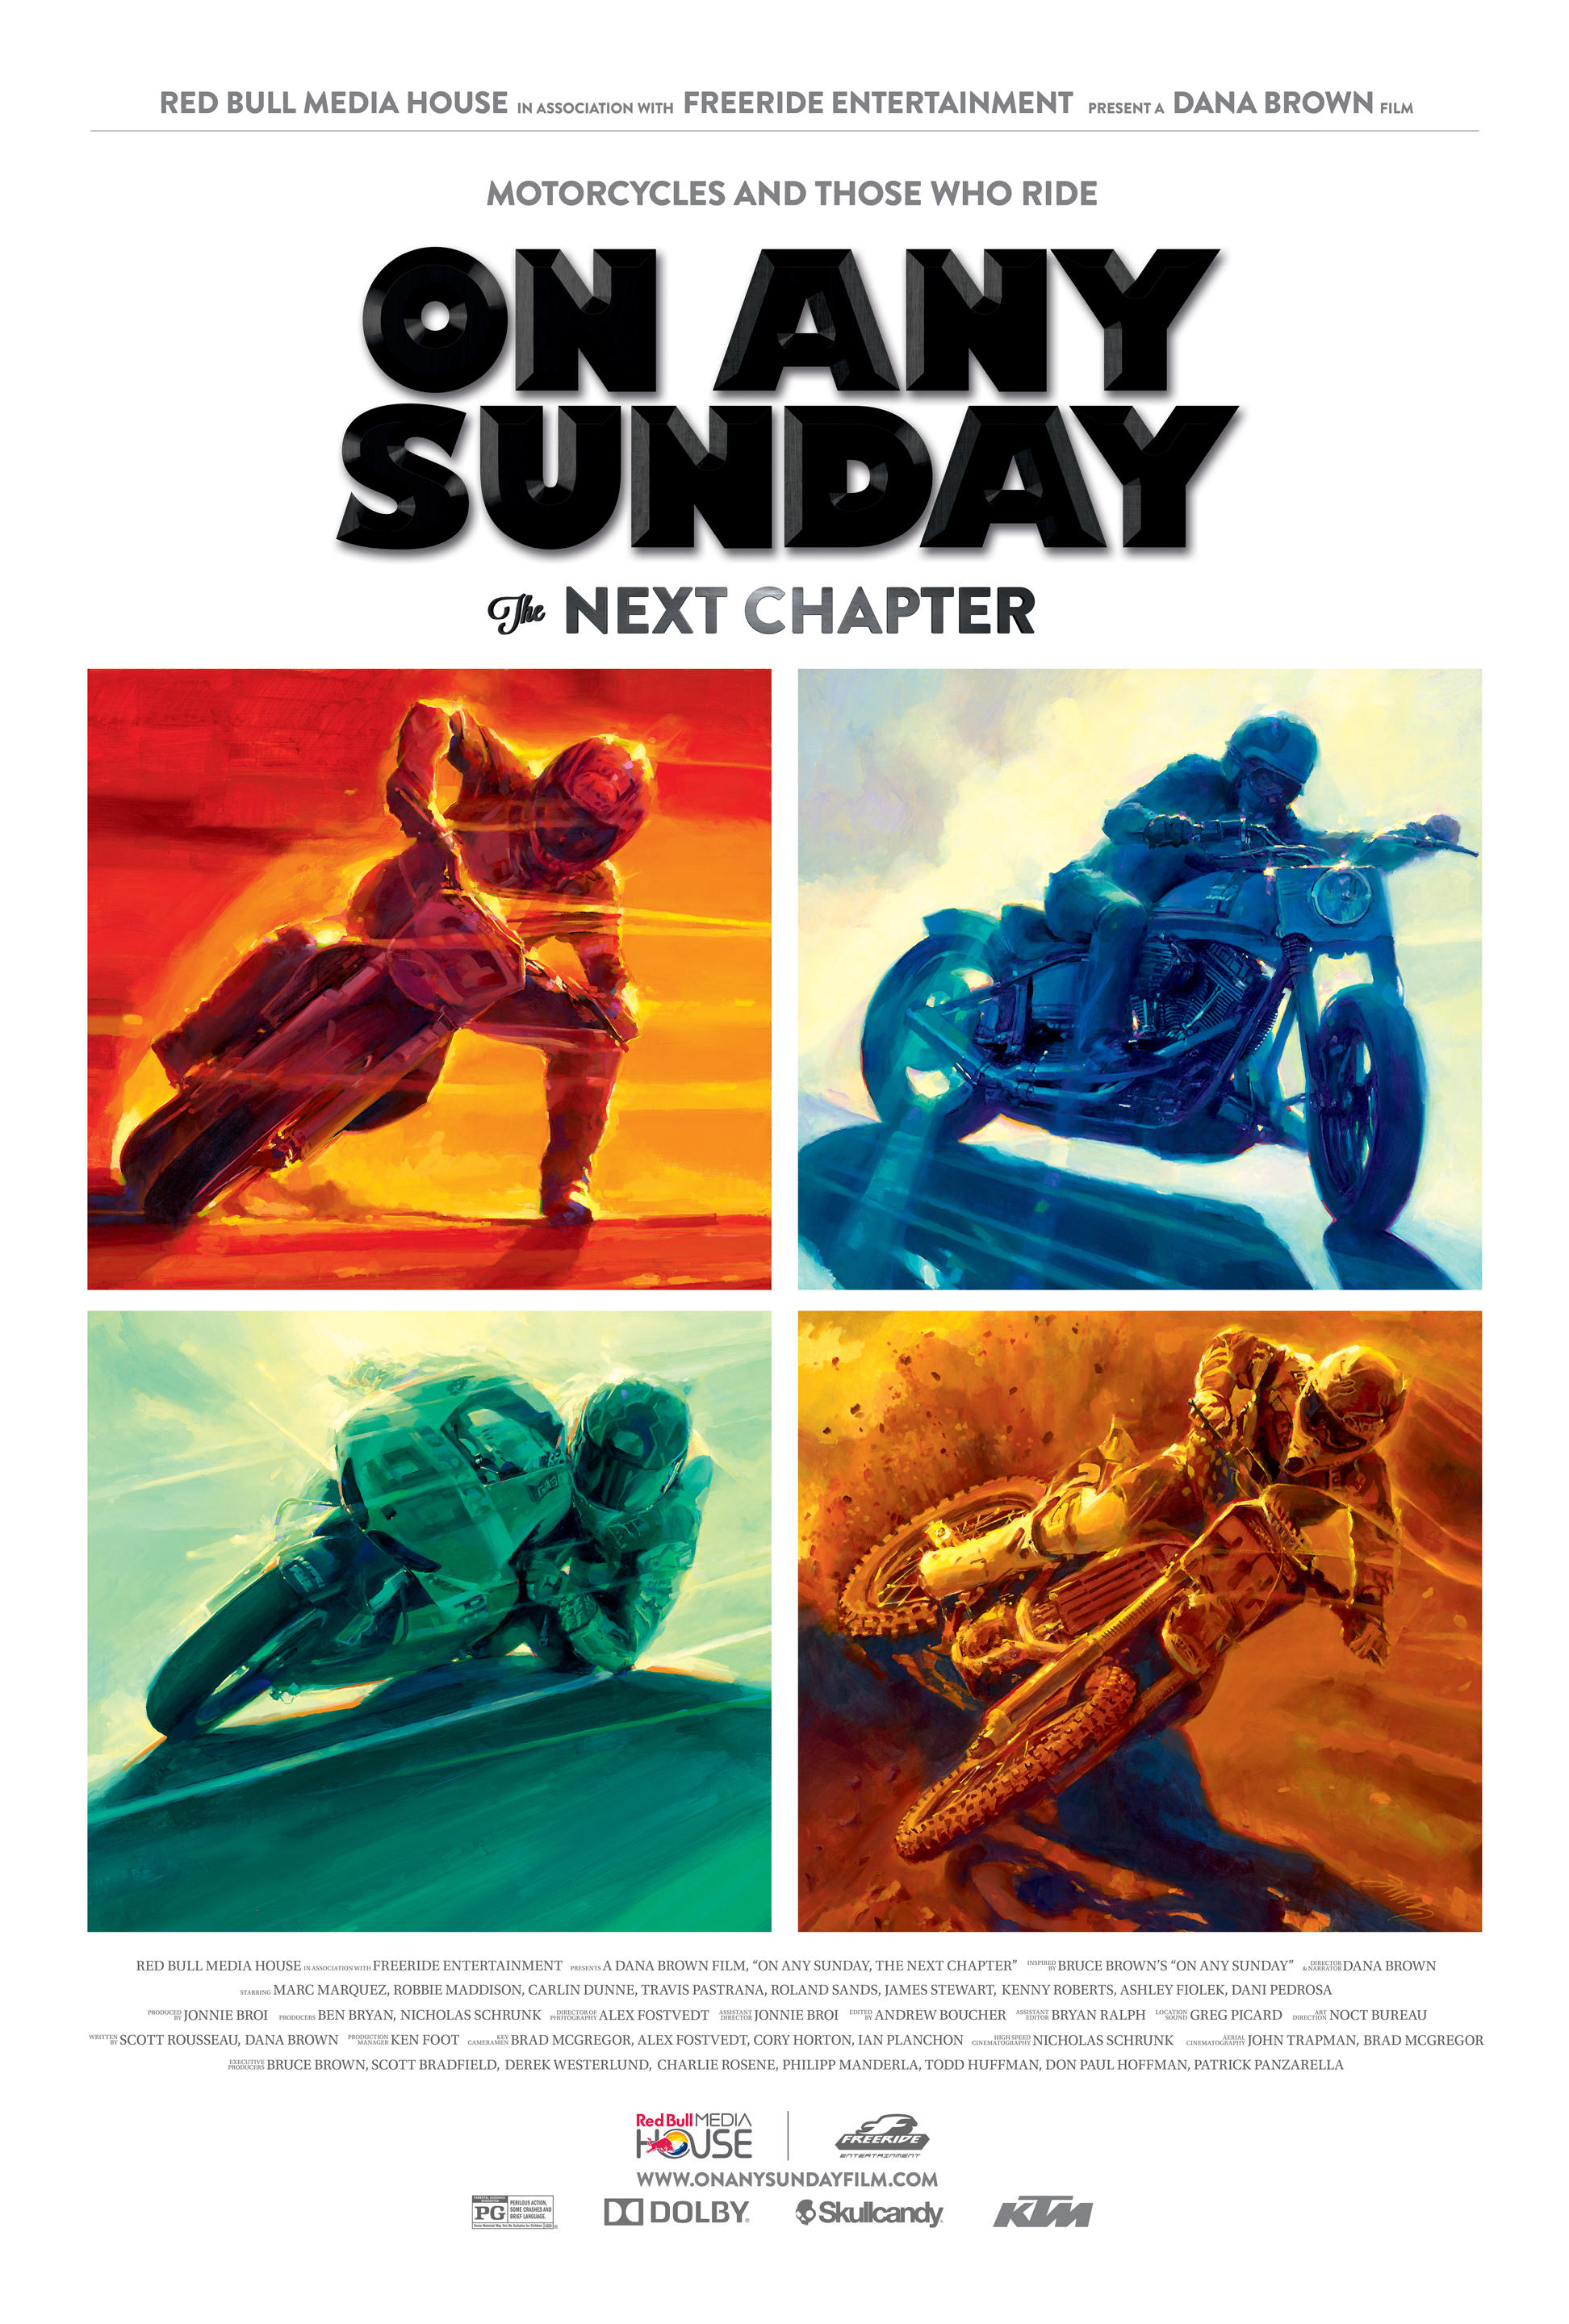 On Any Sunday: The Next Chapter poster art